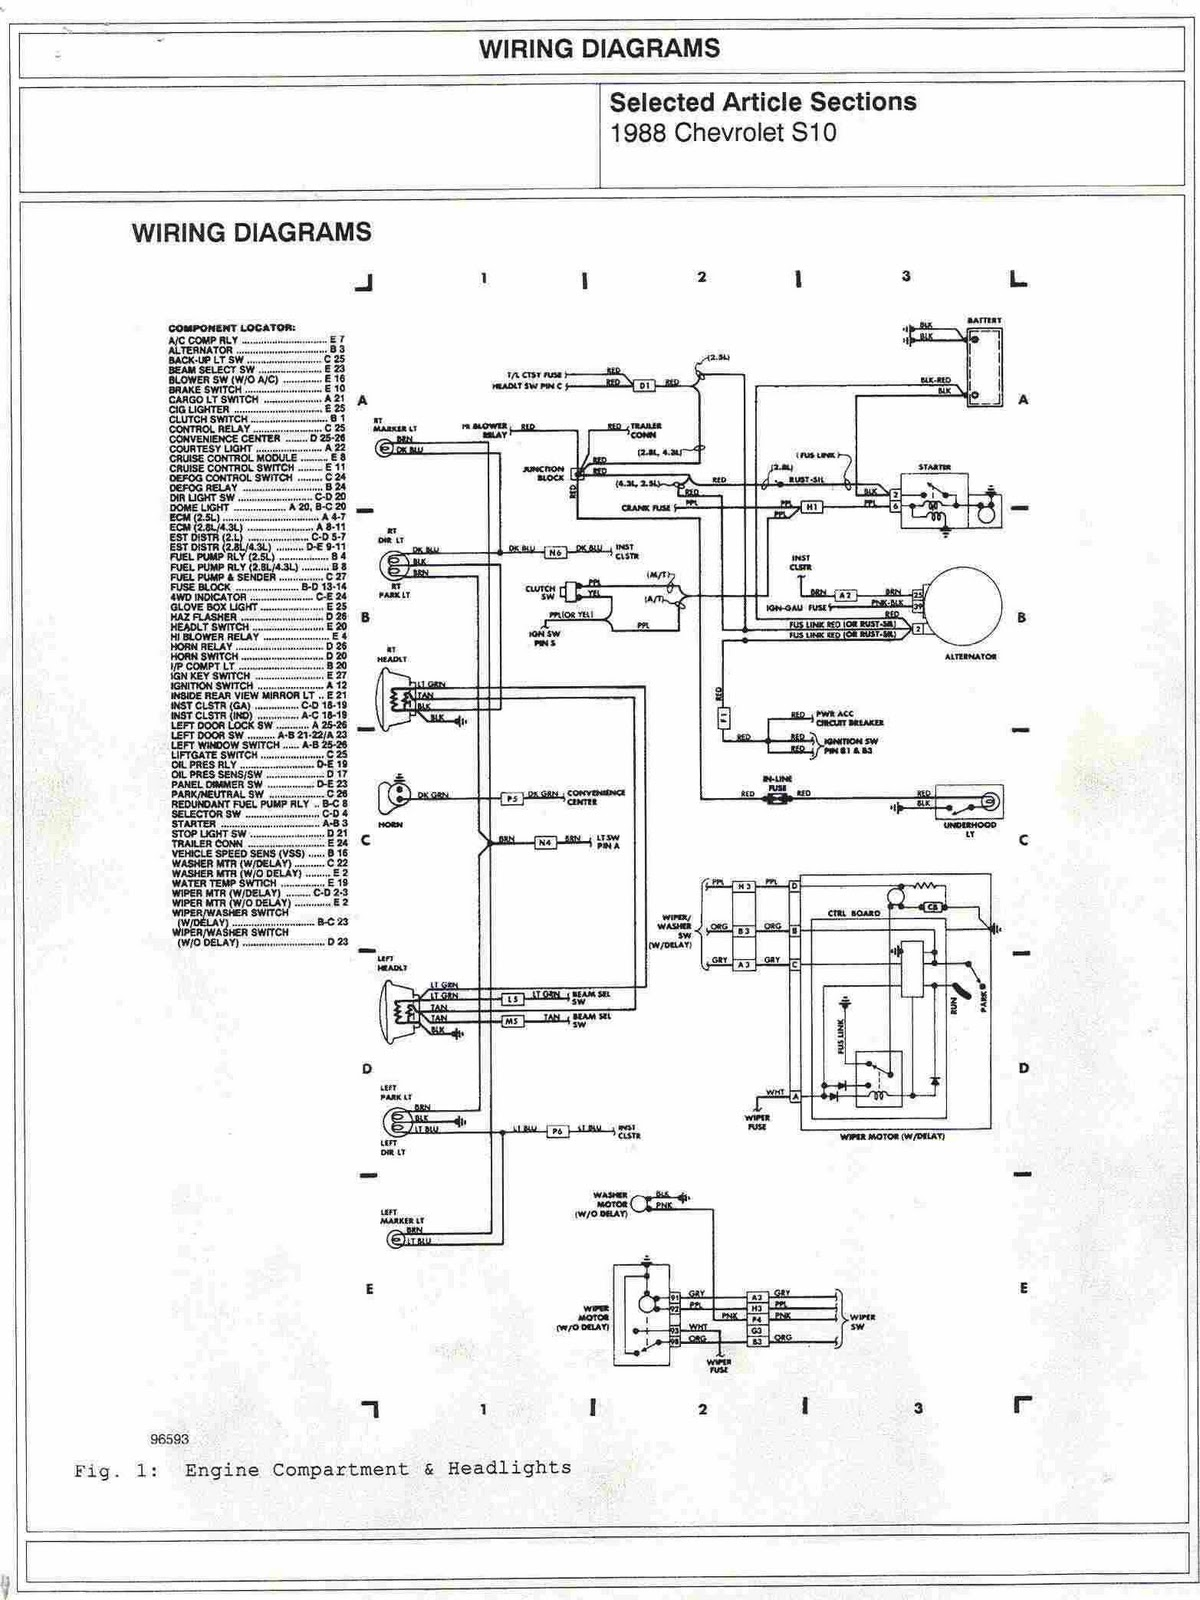 1988+Chevrolet+S10+Engine+Compartment+and+Headlights+Wiring+Diagrams 95 s10 wiring diagram 95 tahoe wiring diagram \u2022 wiring diagrams 95 Camaro Floor Pan at honlapkeszites.co